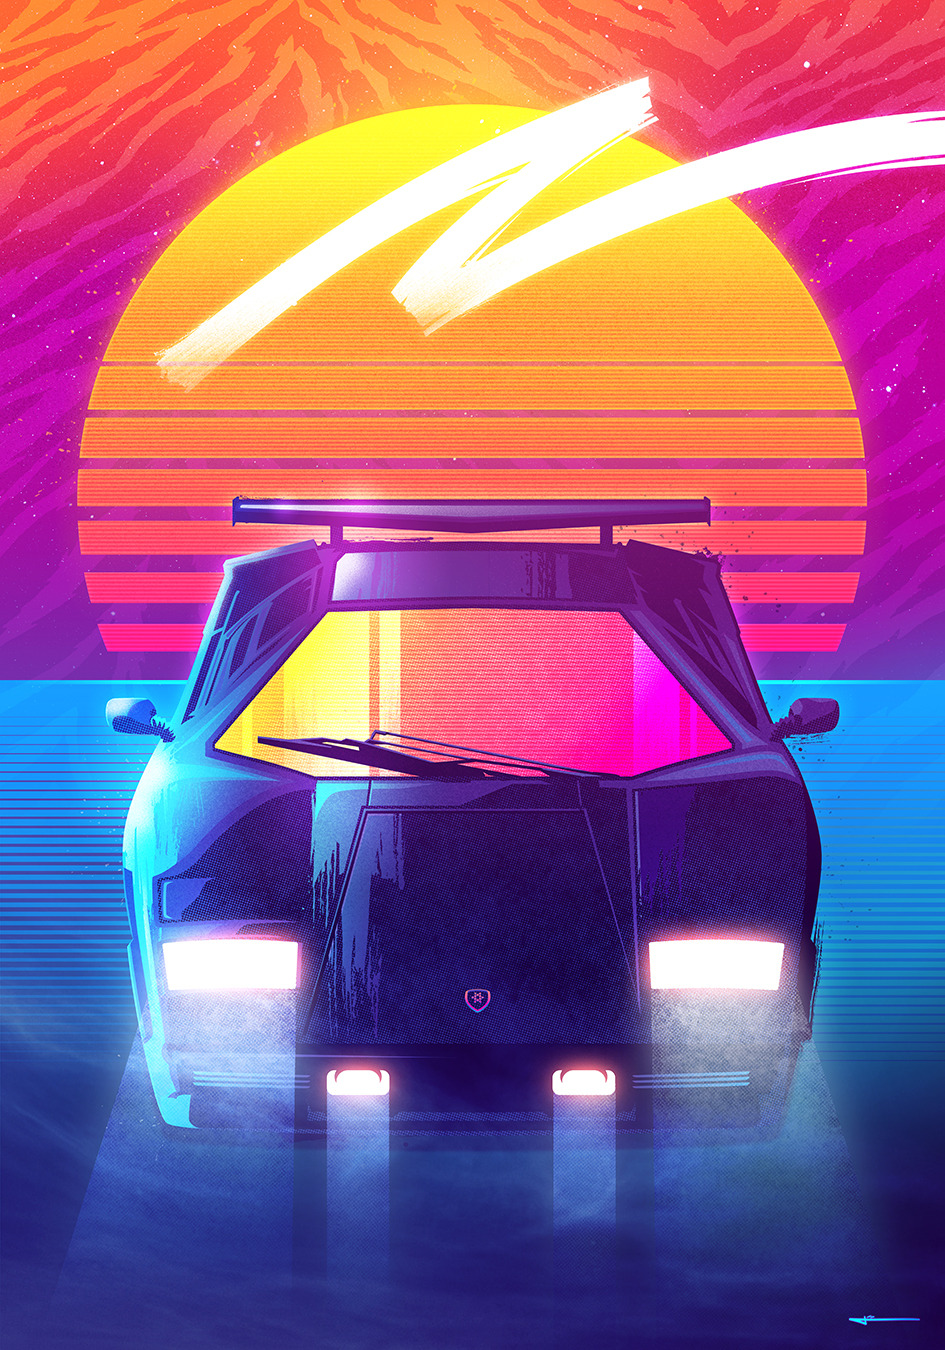 Neon Car Phone Wallpaper Uzicopter The Signalnoise Tumblr Photo